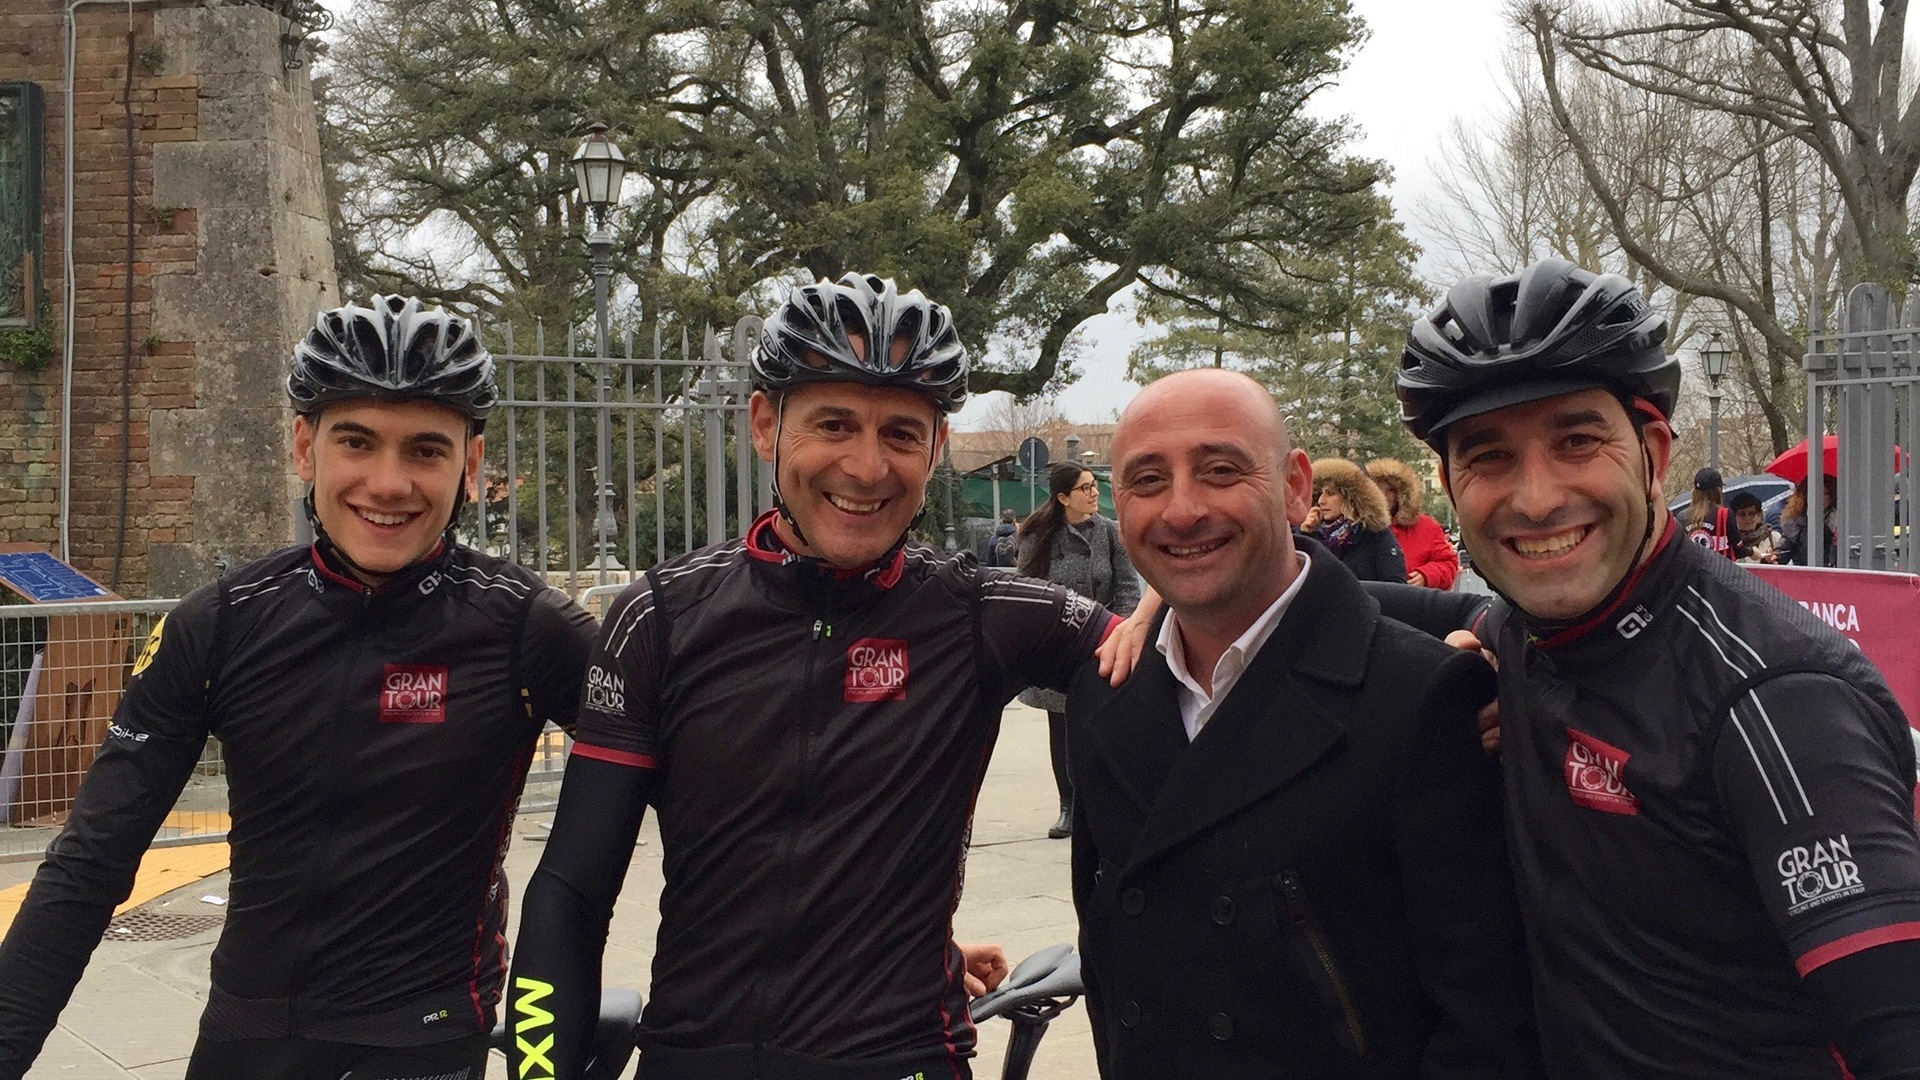 GF STRADE BIANCHE & PRO RACE